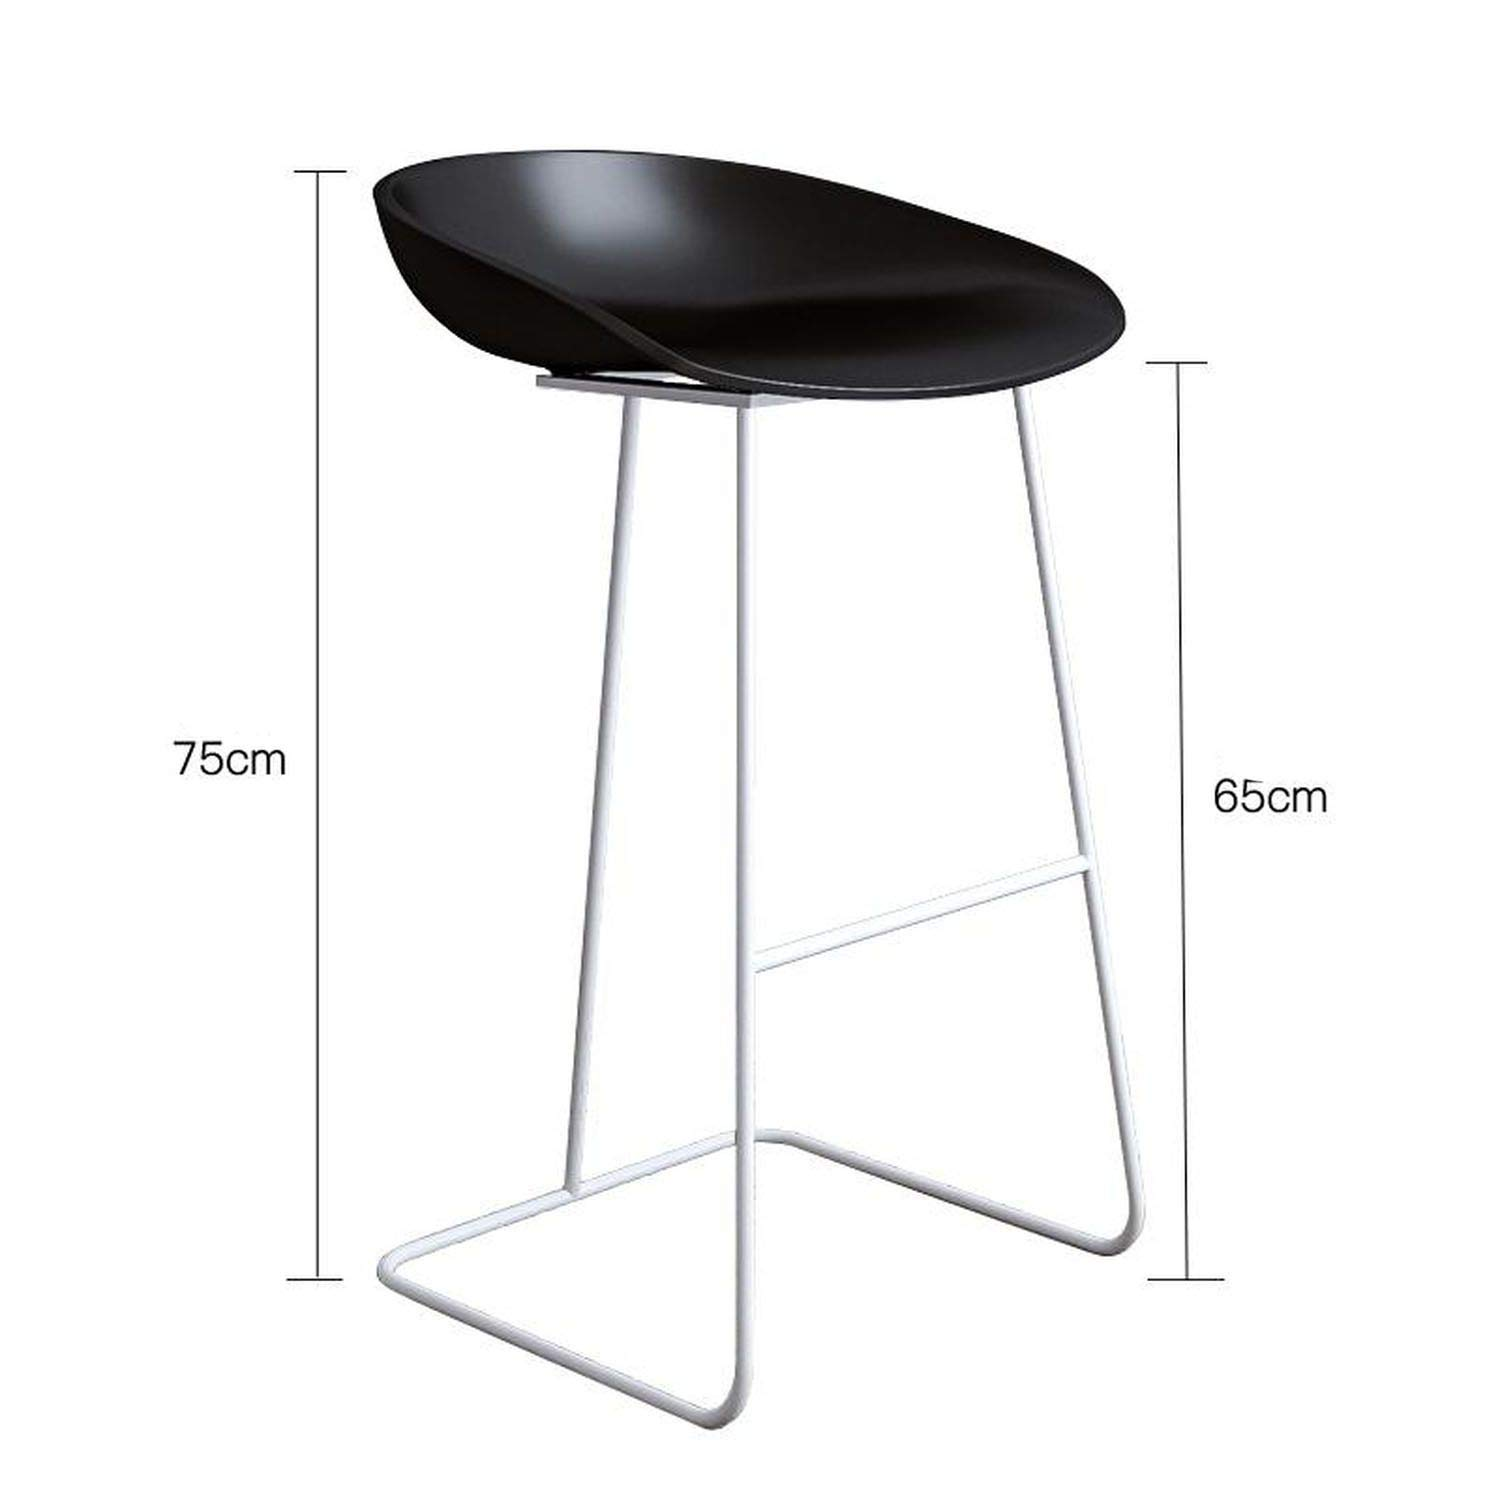 Style 7 one size Bar Stools gold Wrought Iron Stool Modern Minimalist Home Backrest High Chair Creative Net Red Bar,Style 11